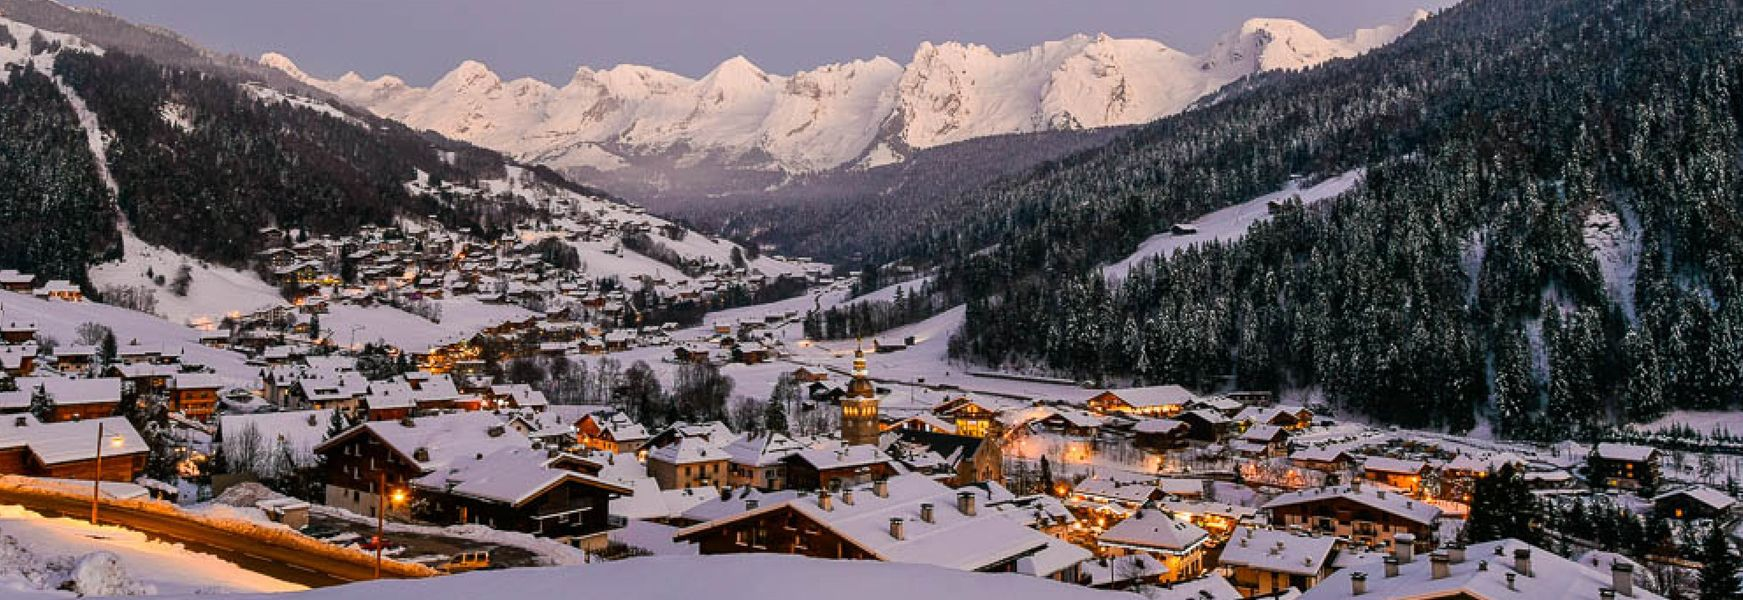 Location Ski Intersport Le Grand Bornand